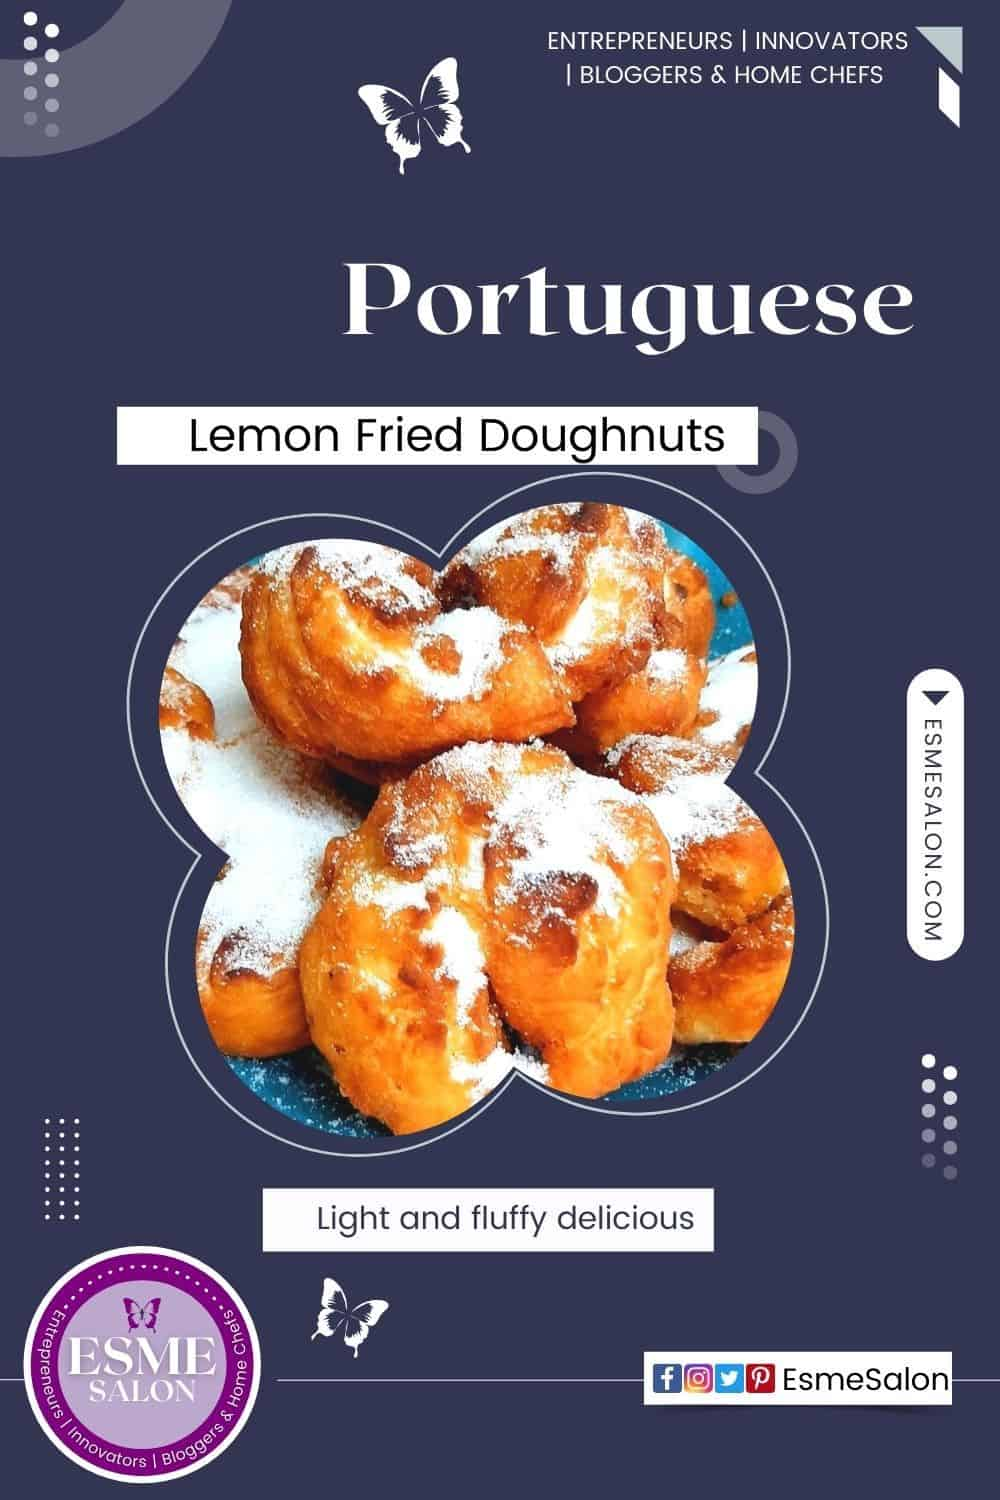 Lemon Fried Doughnuts with lots of sugar added to the top on a blue serving platter